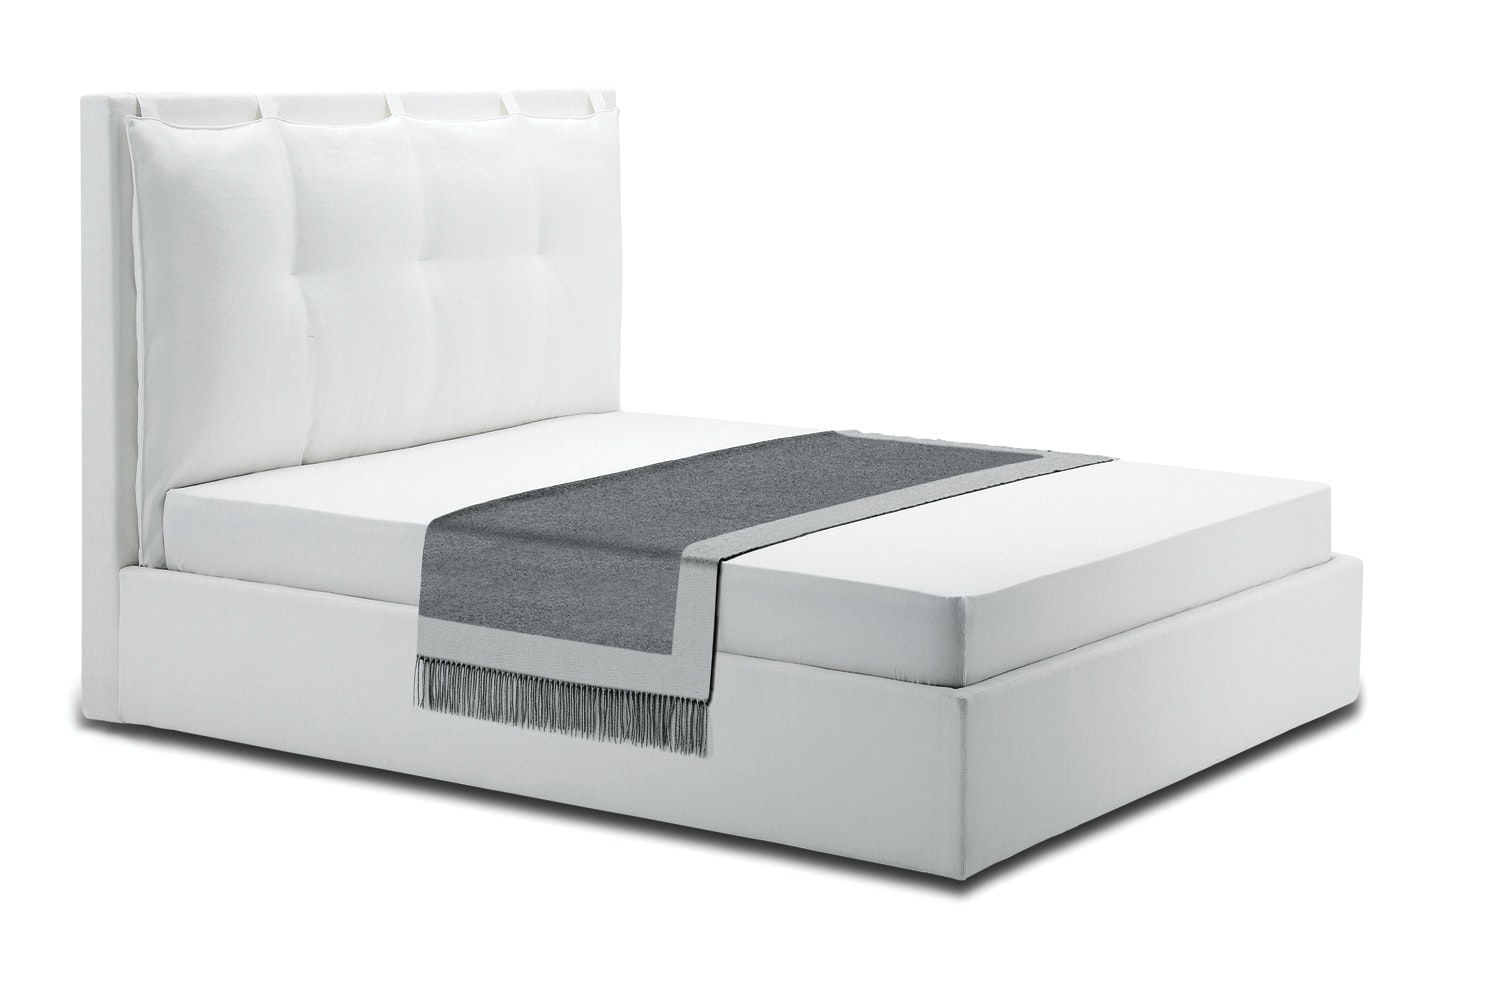 Nirvana Bed by Emaf Progetti for Zanotta